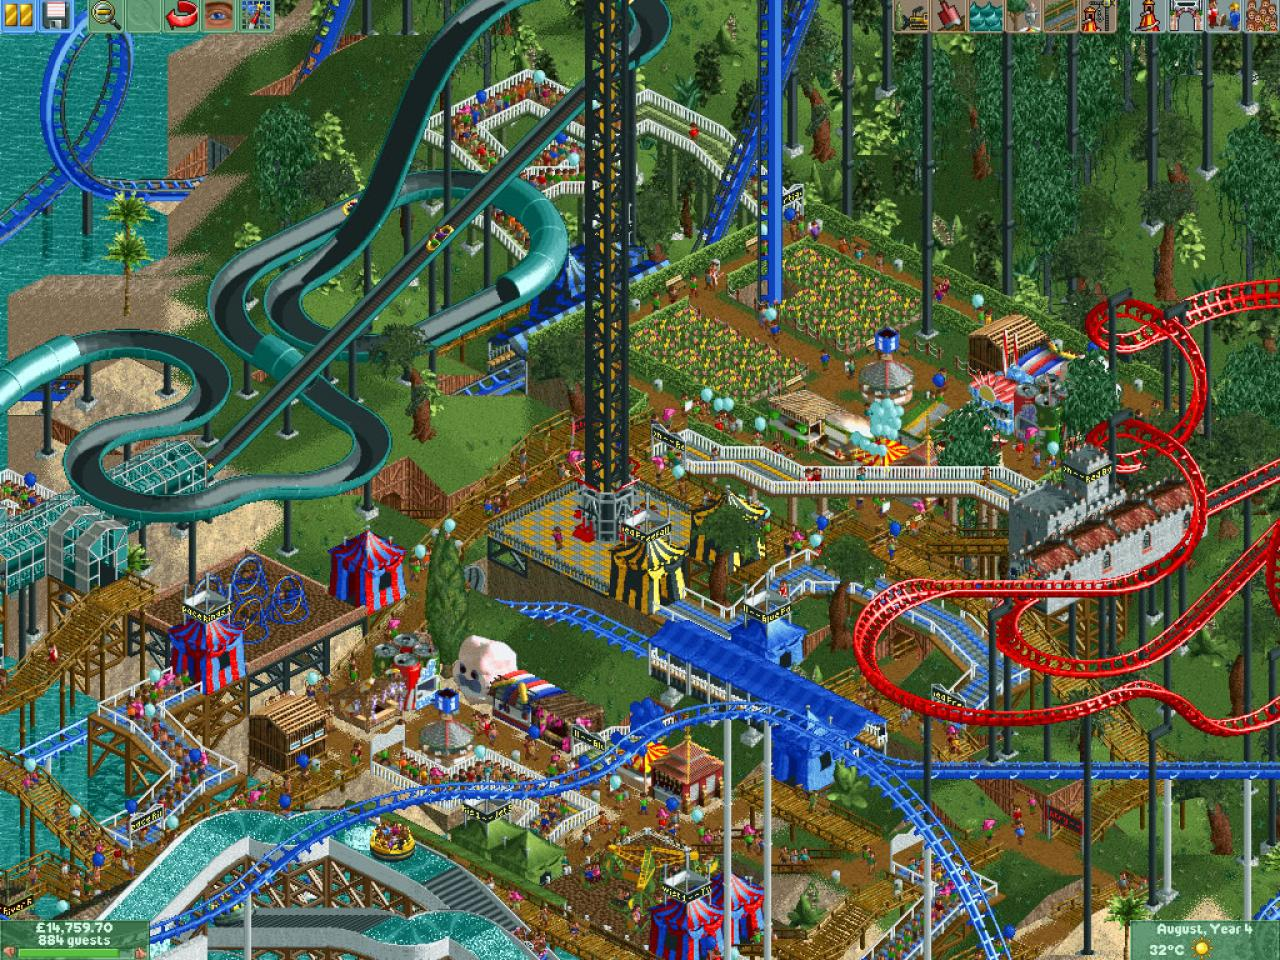 Roller coaster tycoon nude patch porn photos